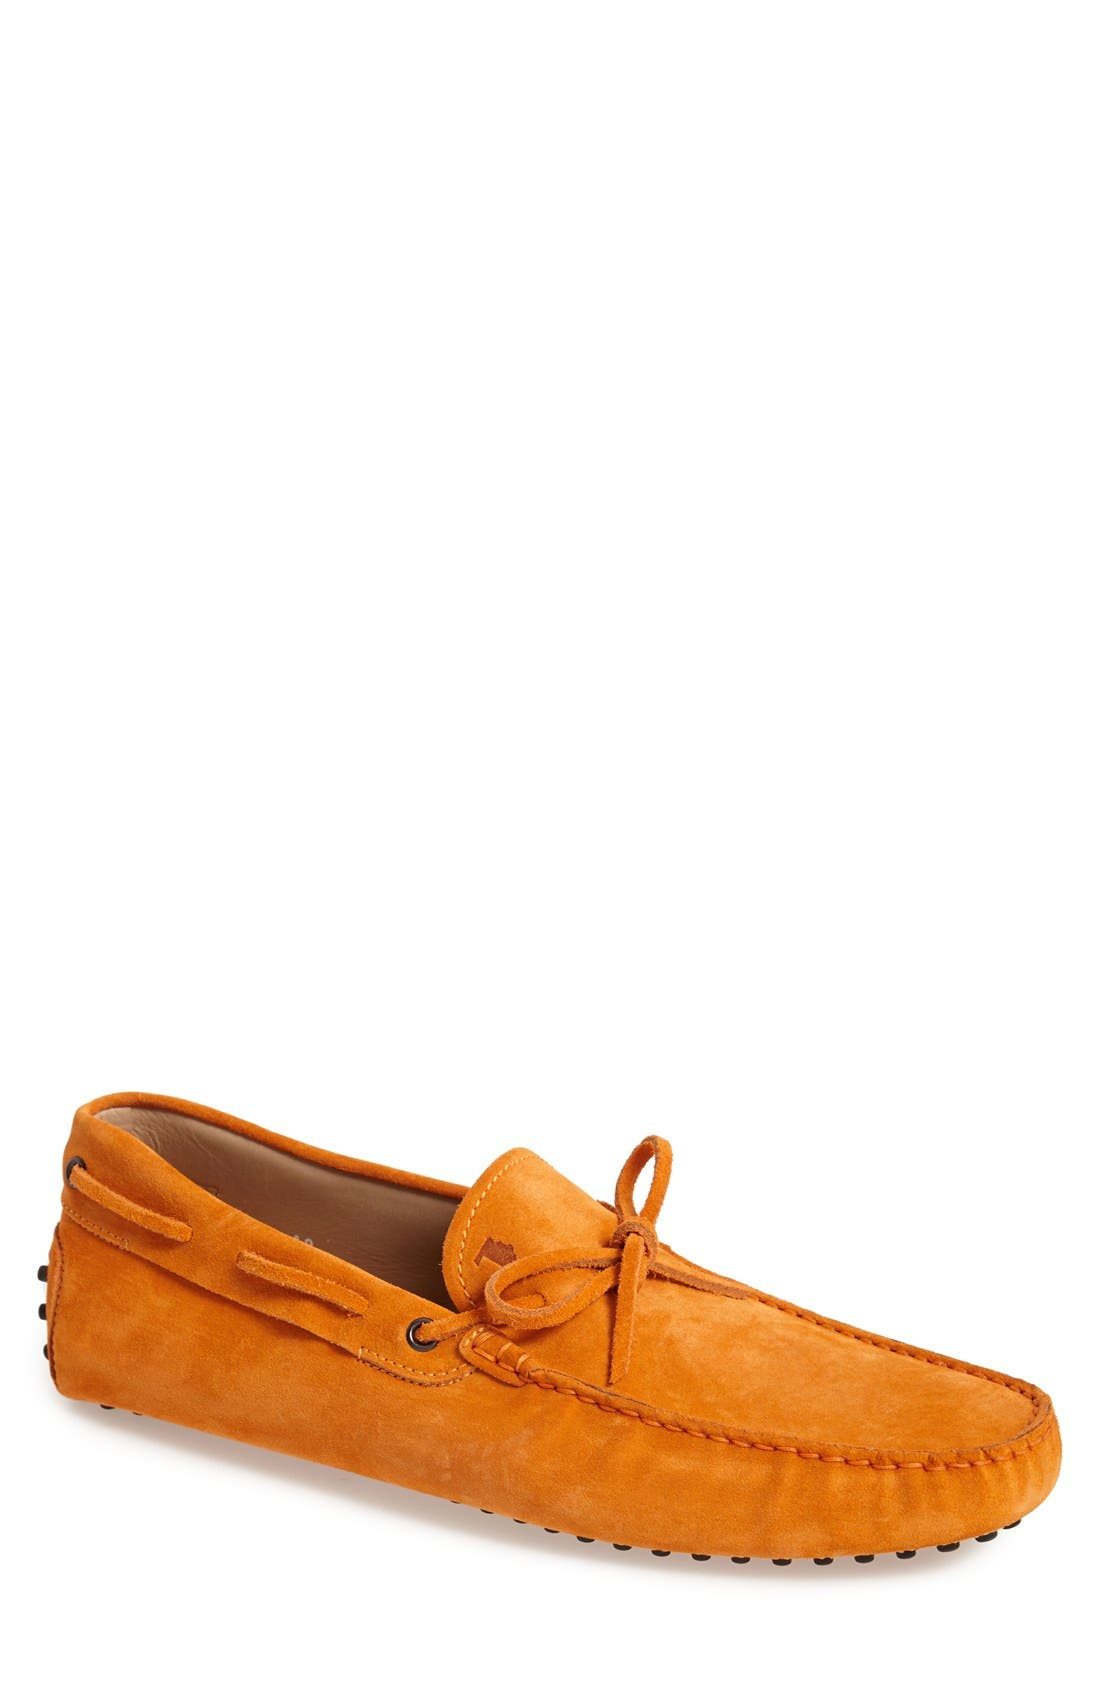 Gommini Tie Front Driving Moccasin,                             Main thumbnail 22, color,